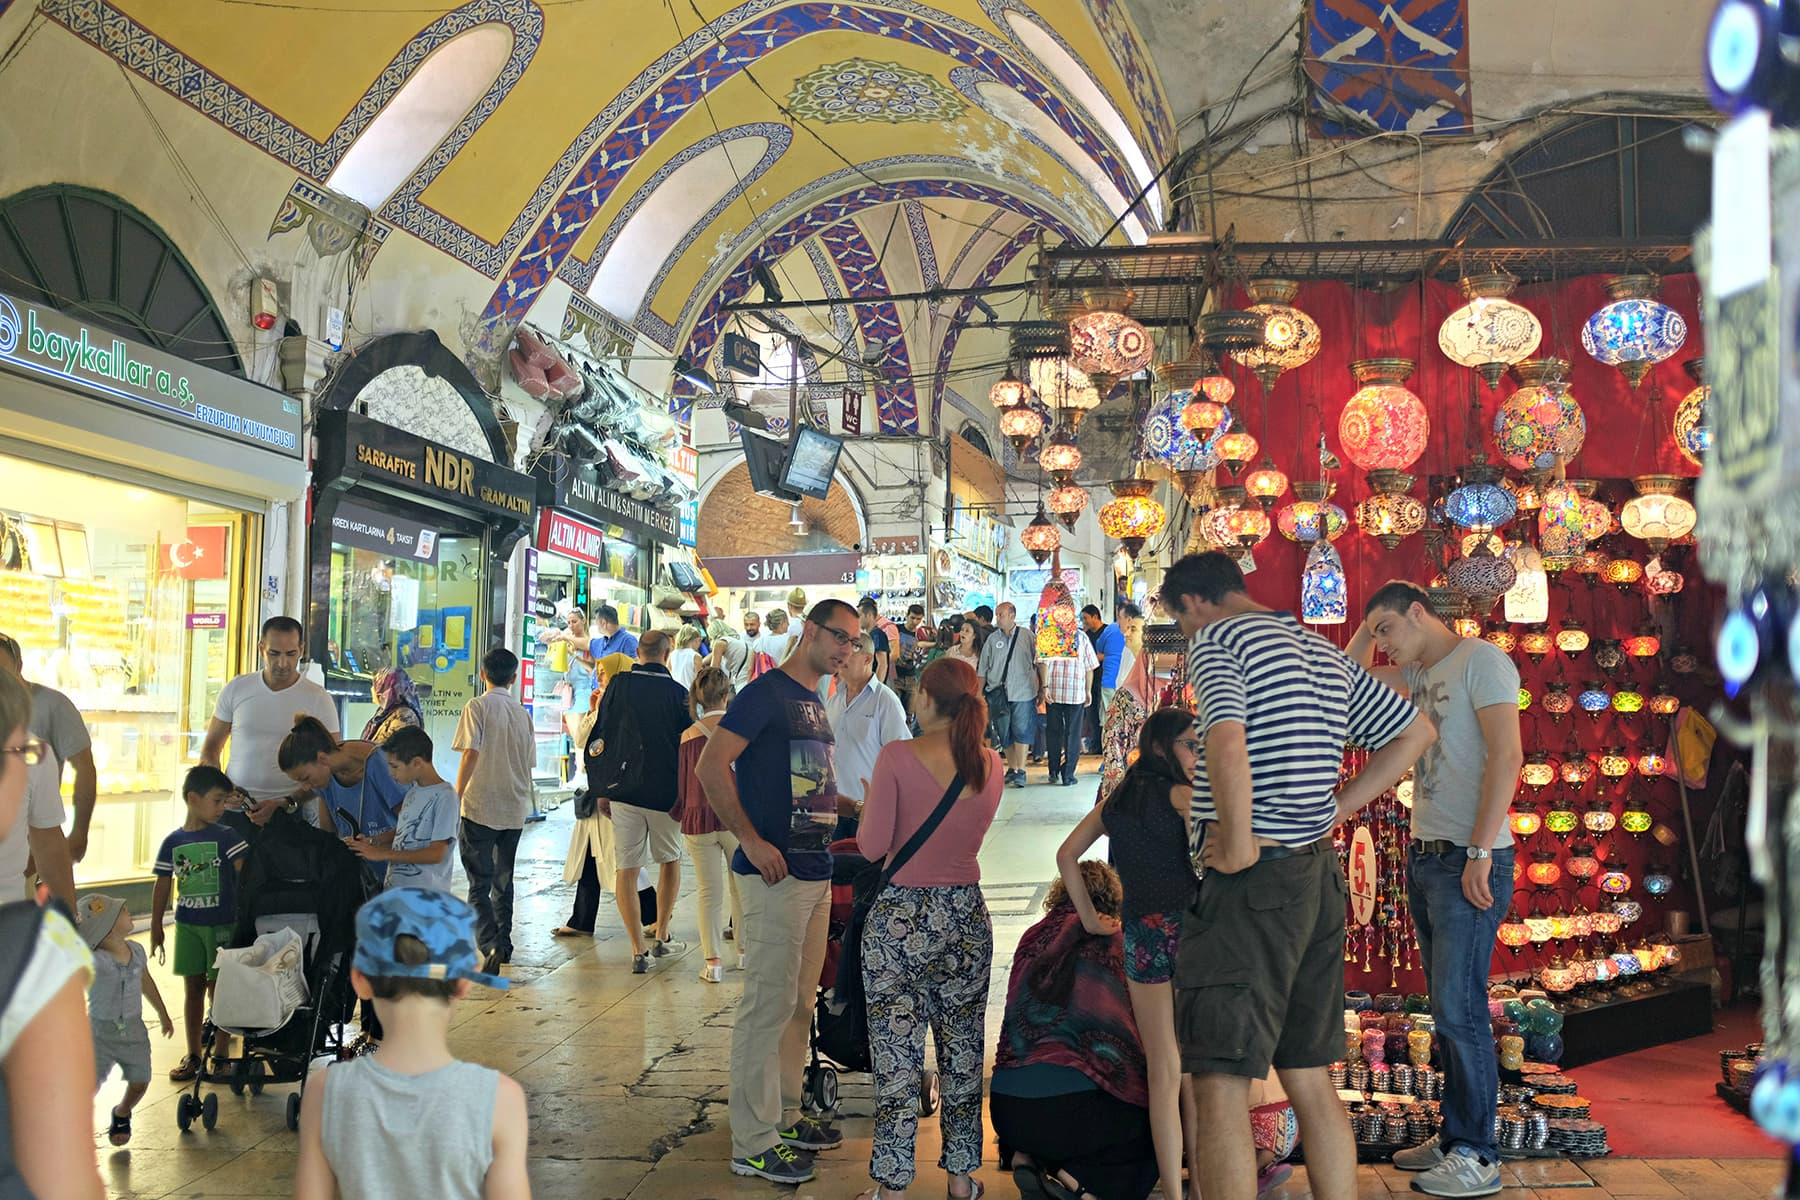 The Grand Bazaar is a favourite with tourists for buying Turkish lamps and other souvenirs.